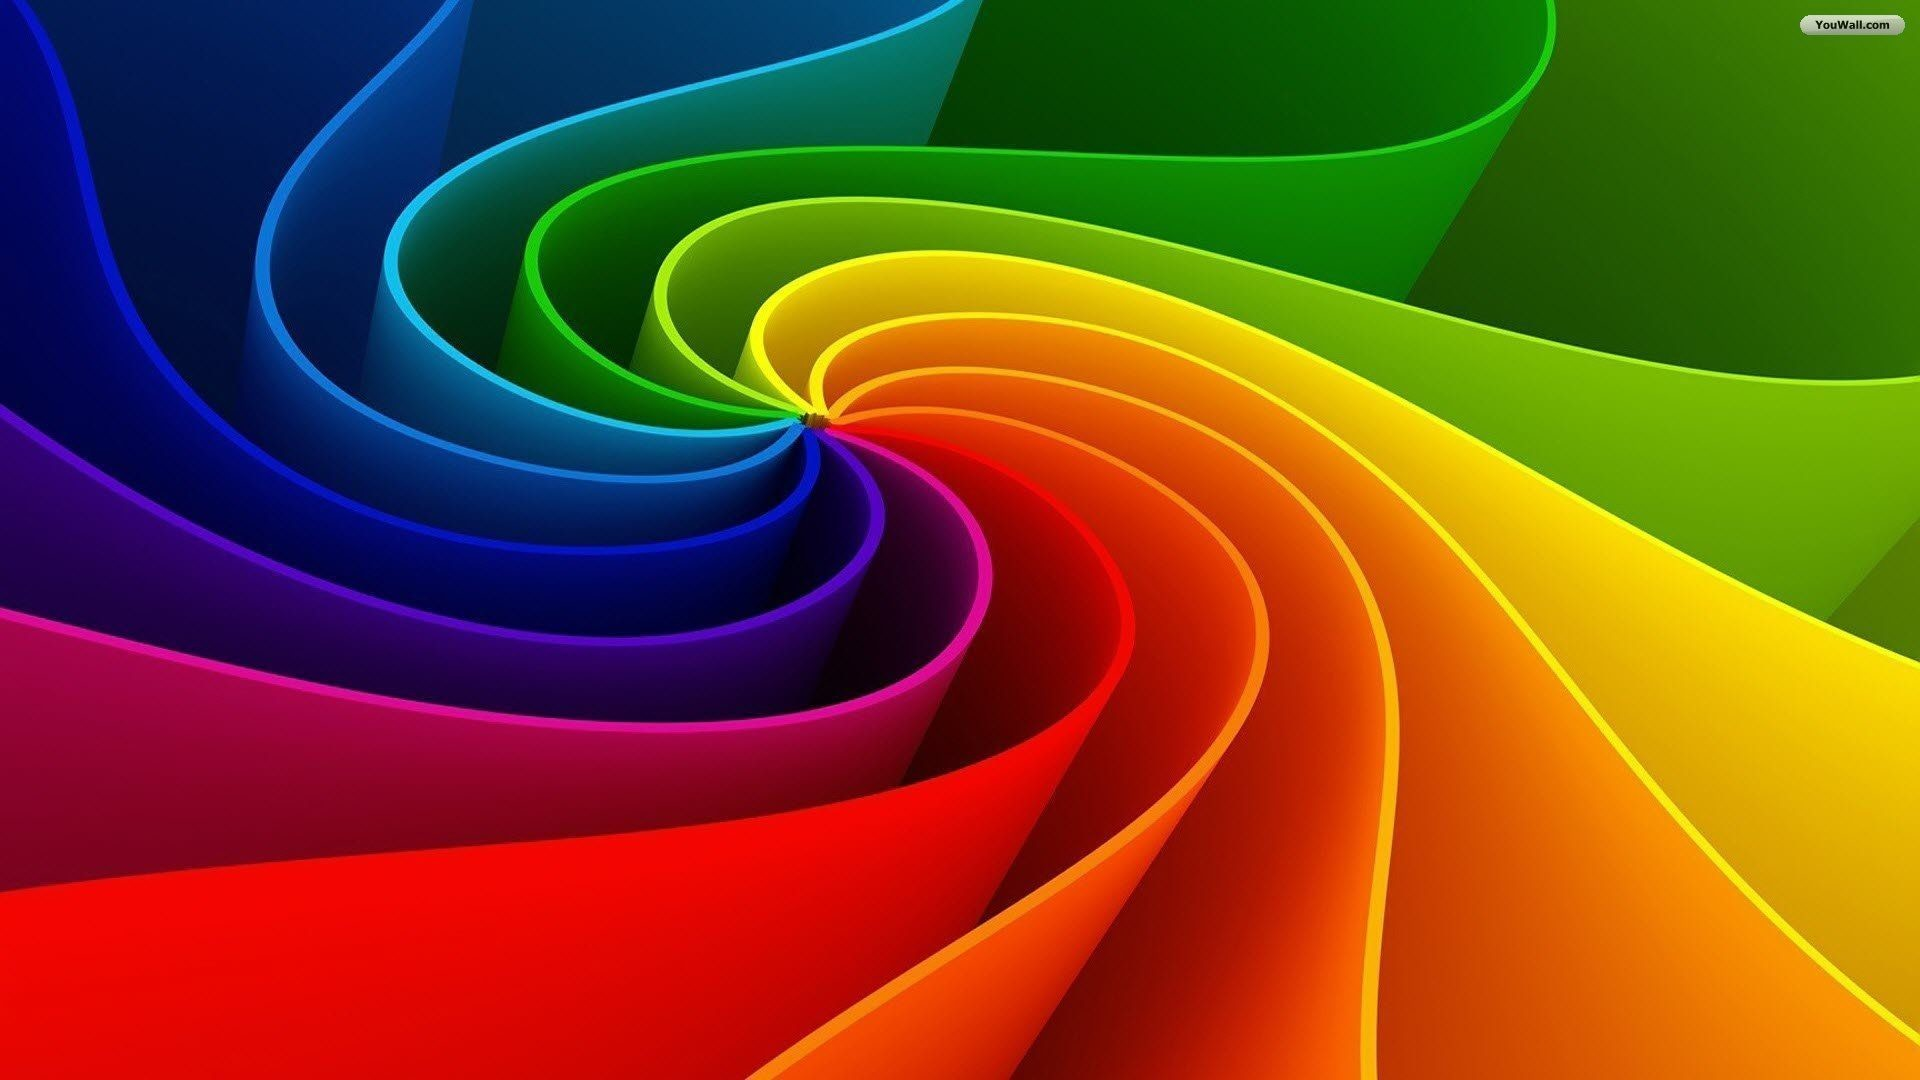 Top Abstract Rainbow Background Wallpaper Images for Pinterest